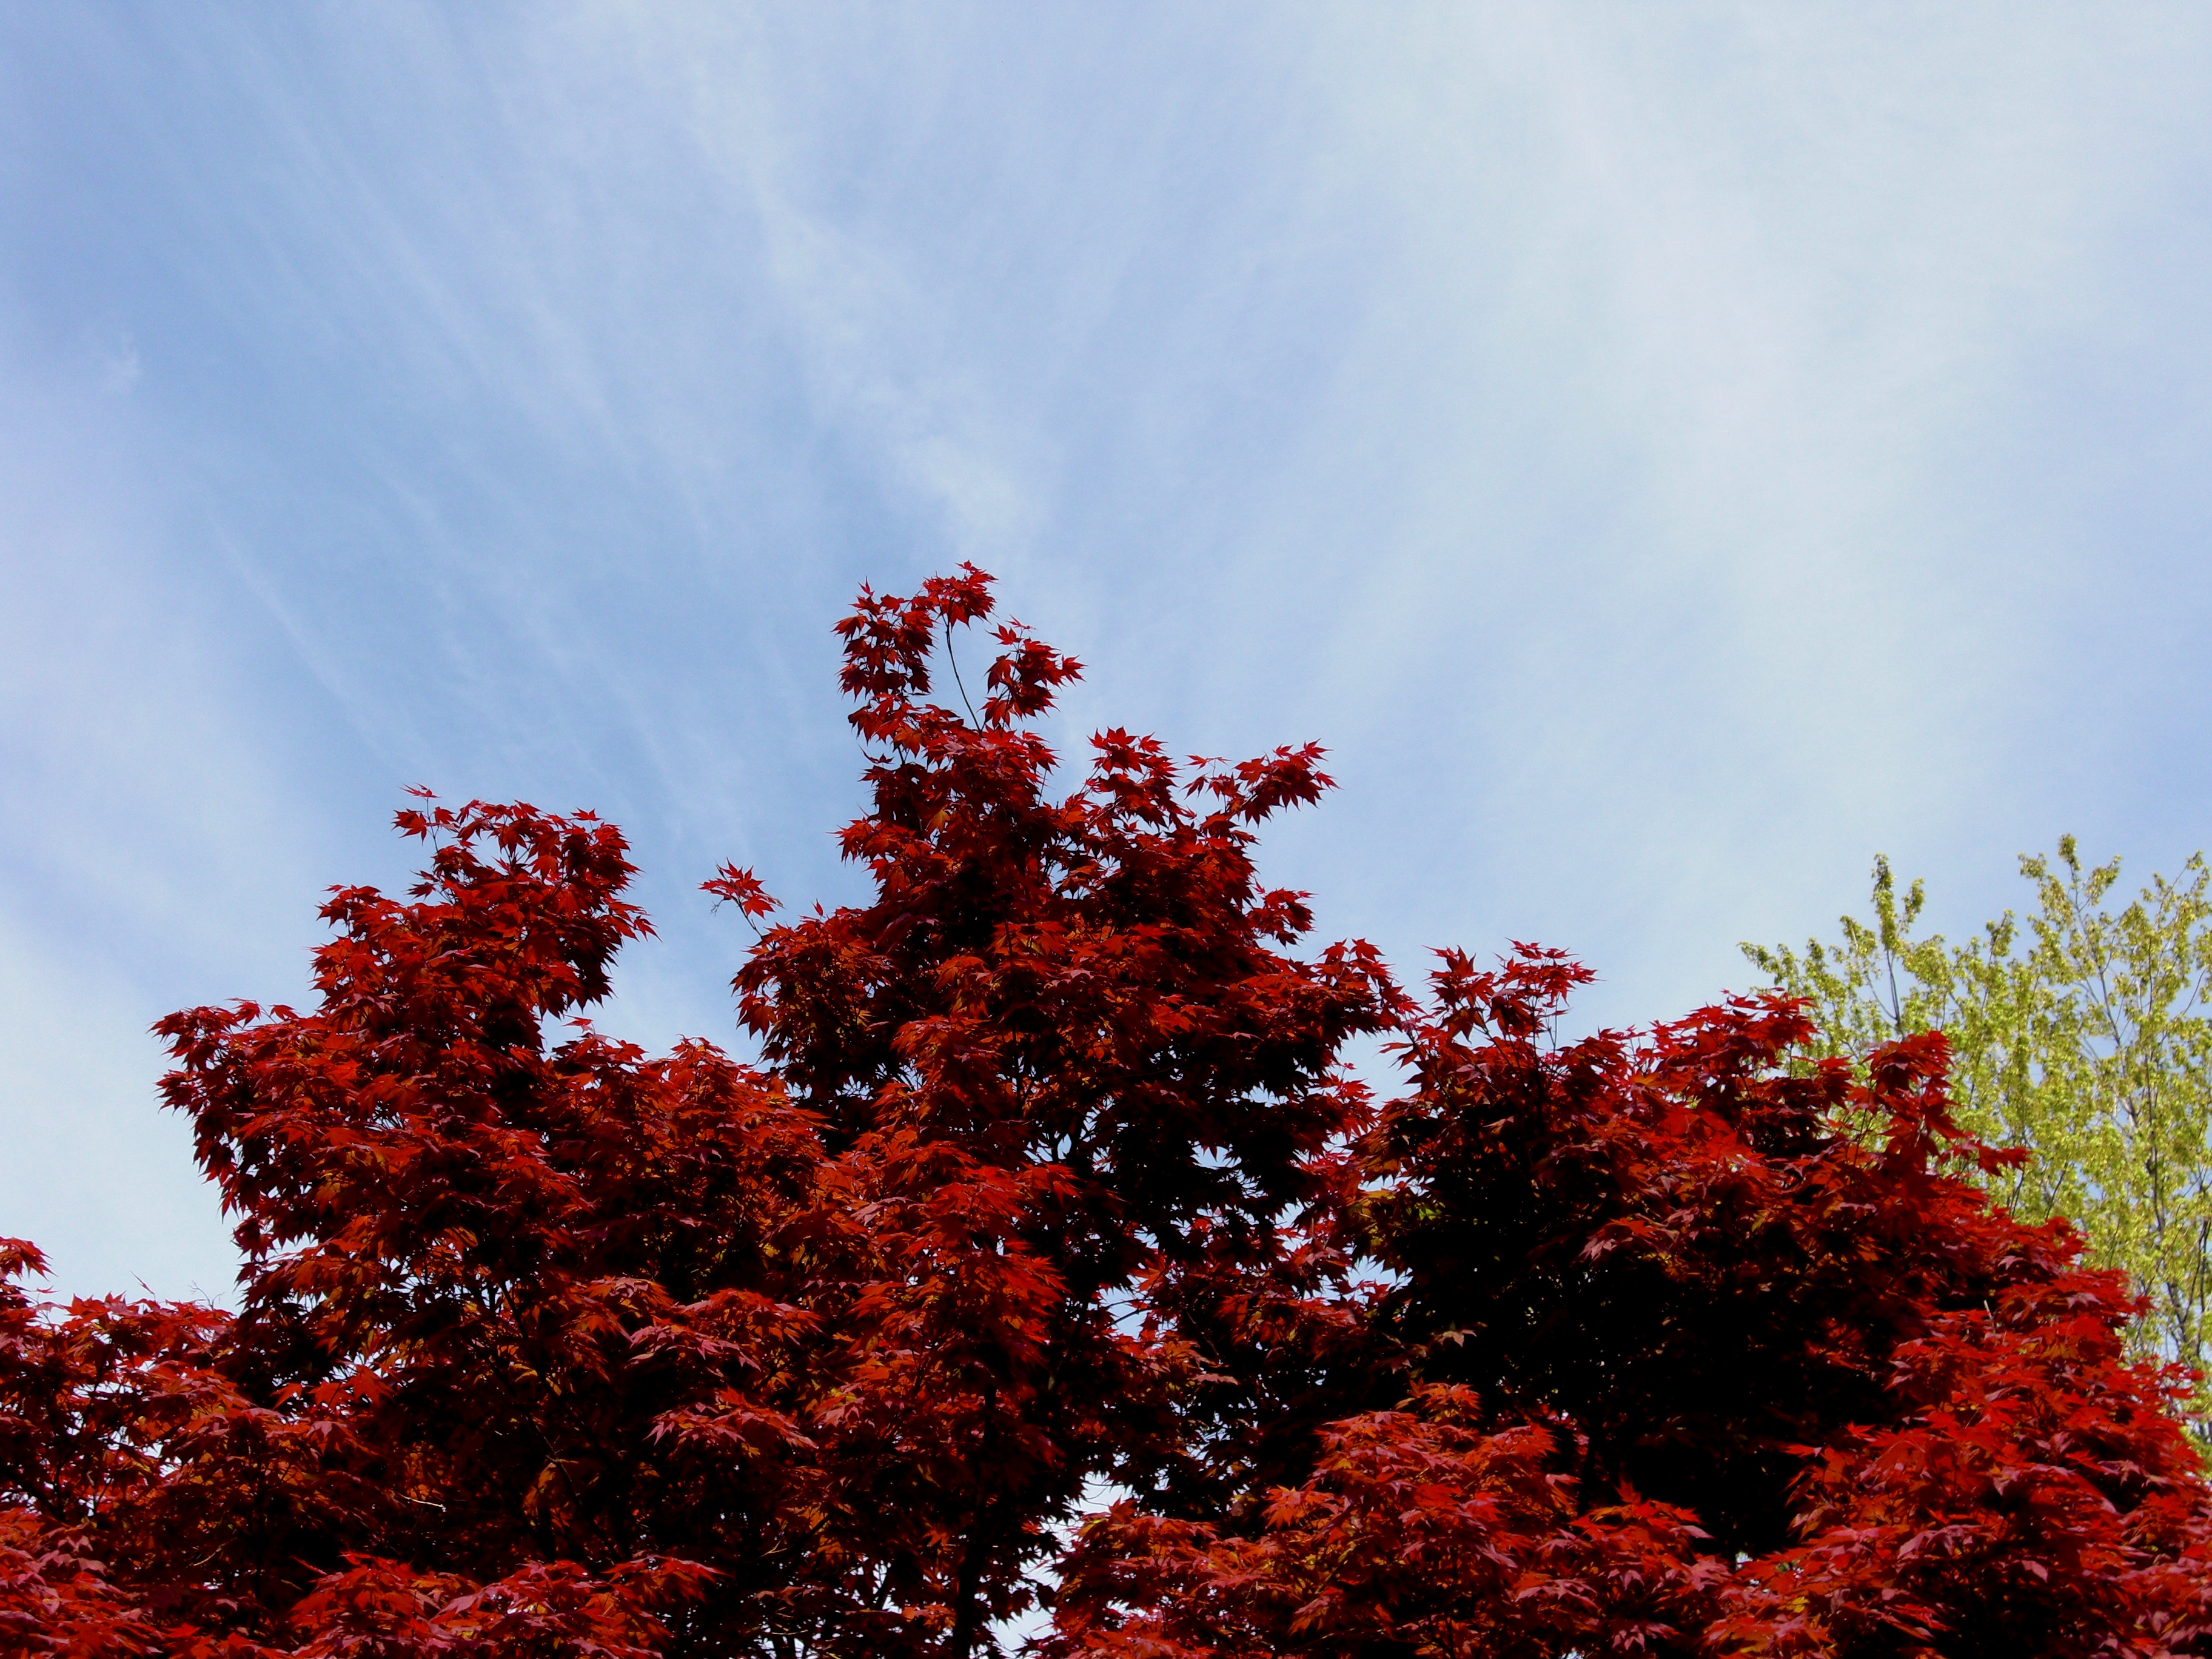 Fall, Season, Sky, Trees, Red, HQ Photo